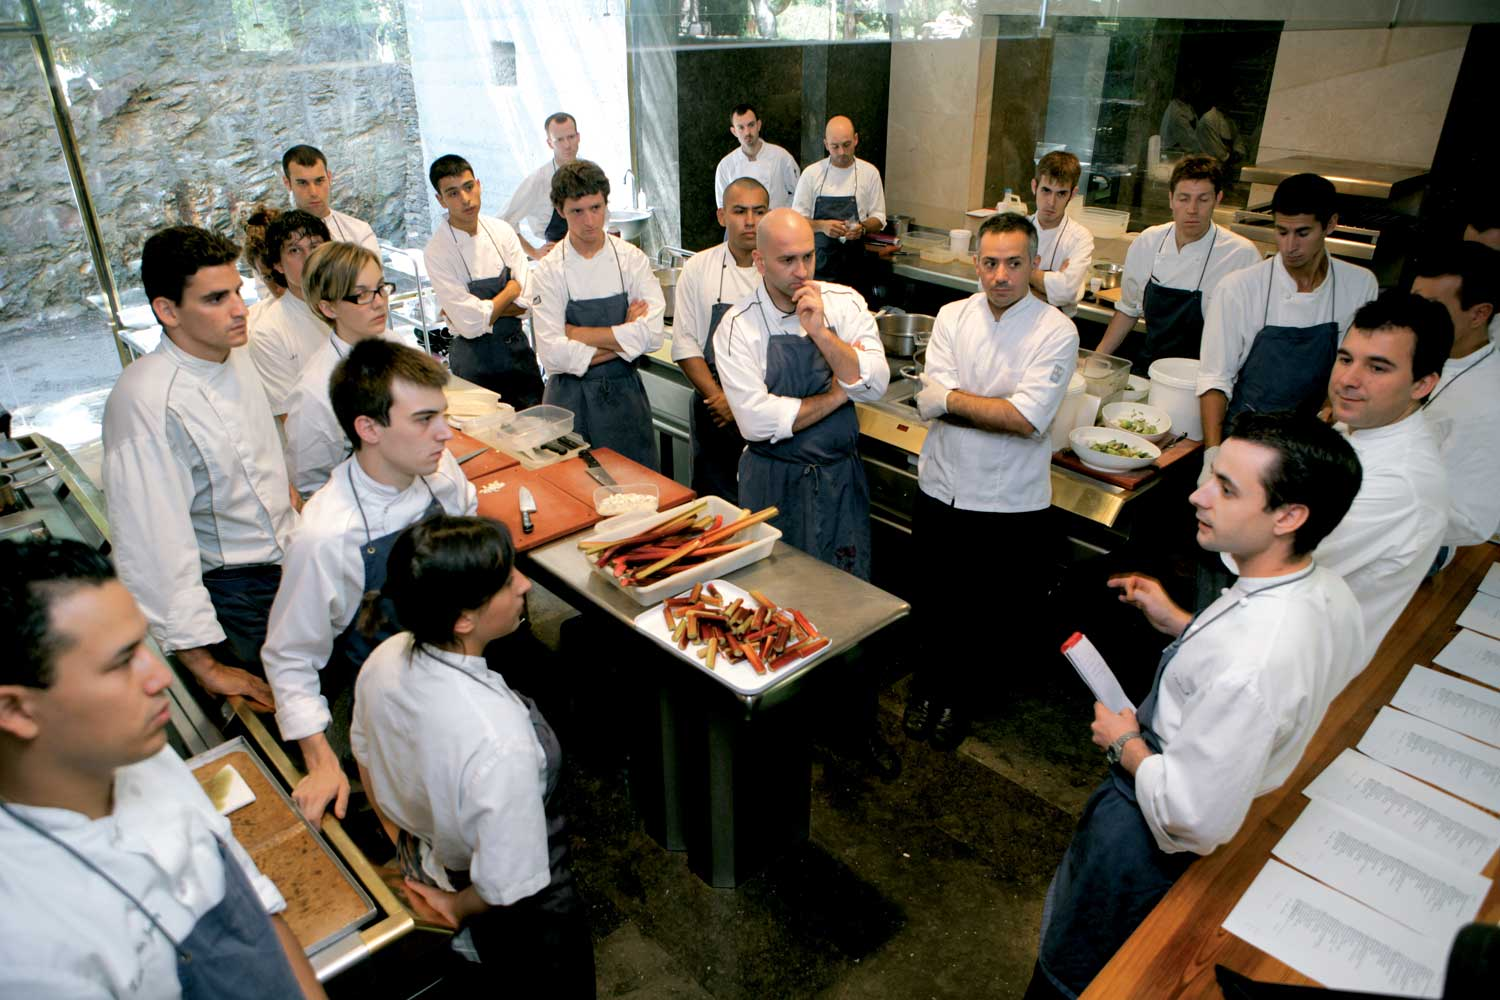 http://lightamber.files.wordpress.com/2009/10/el-bulli-sous-chefs.jpg